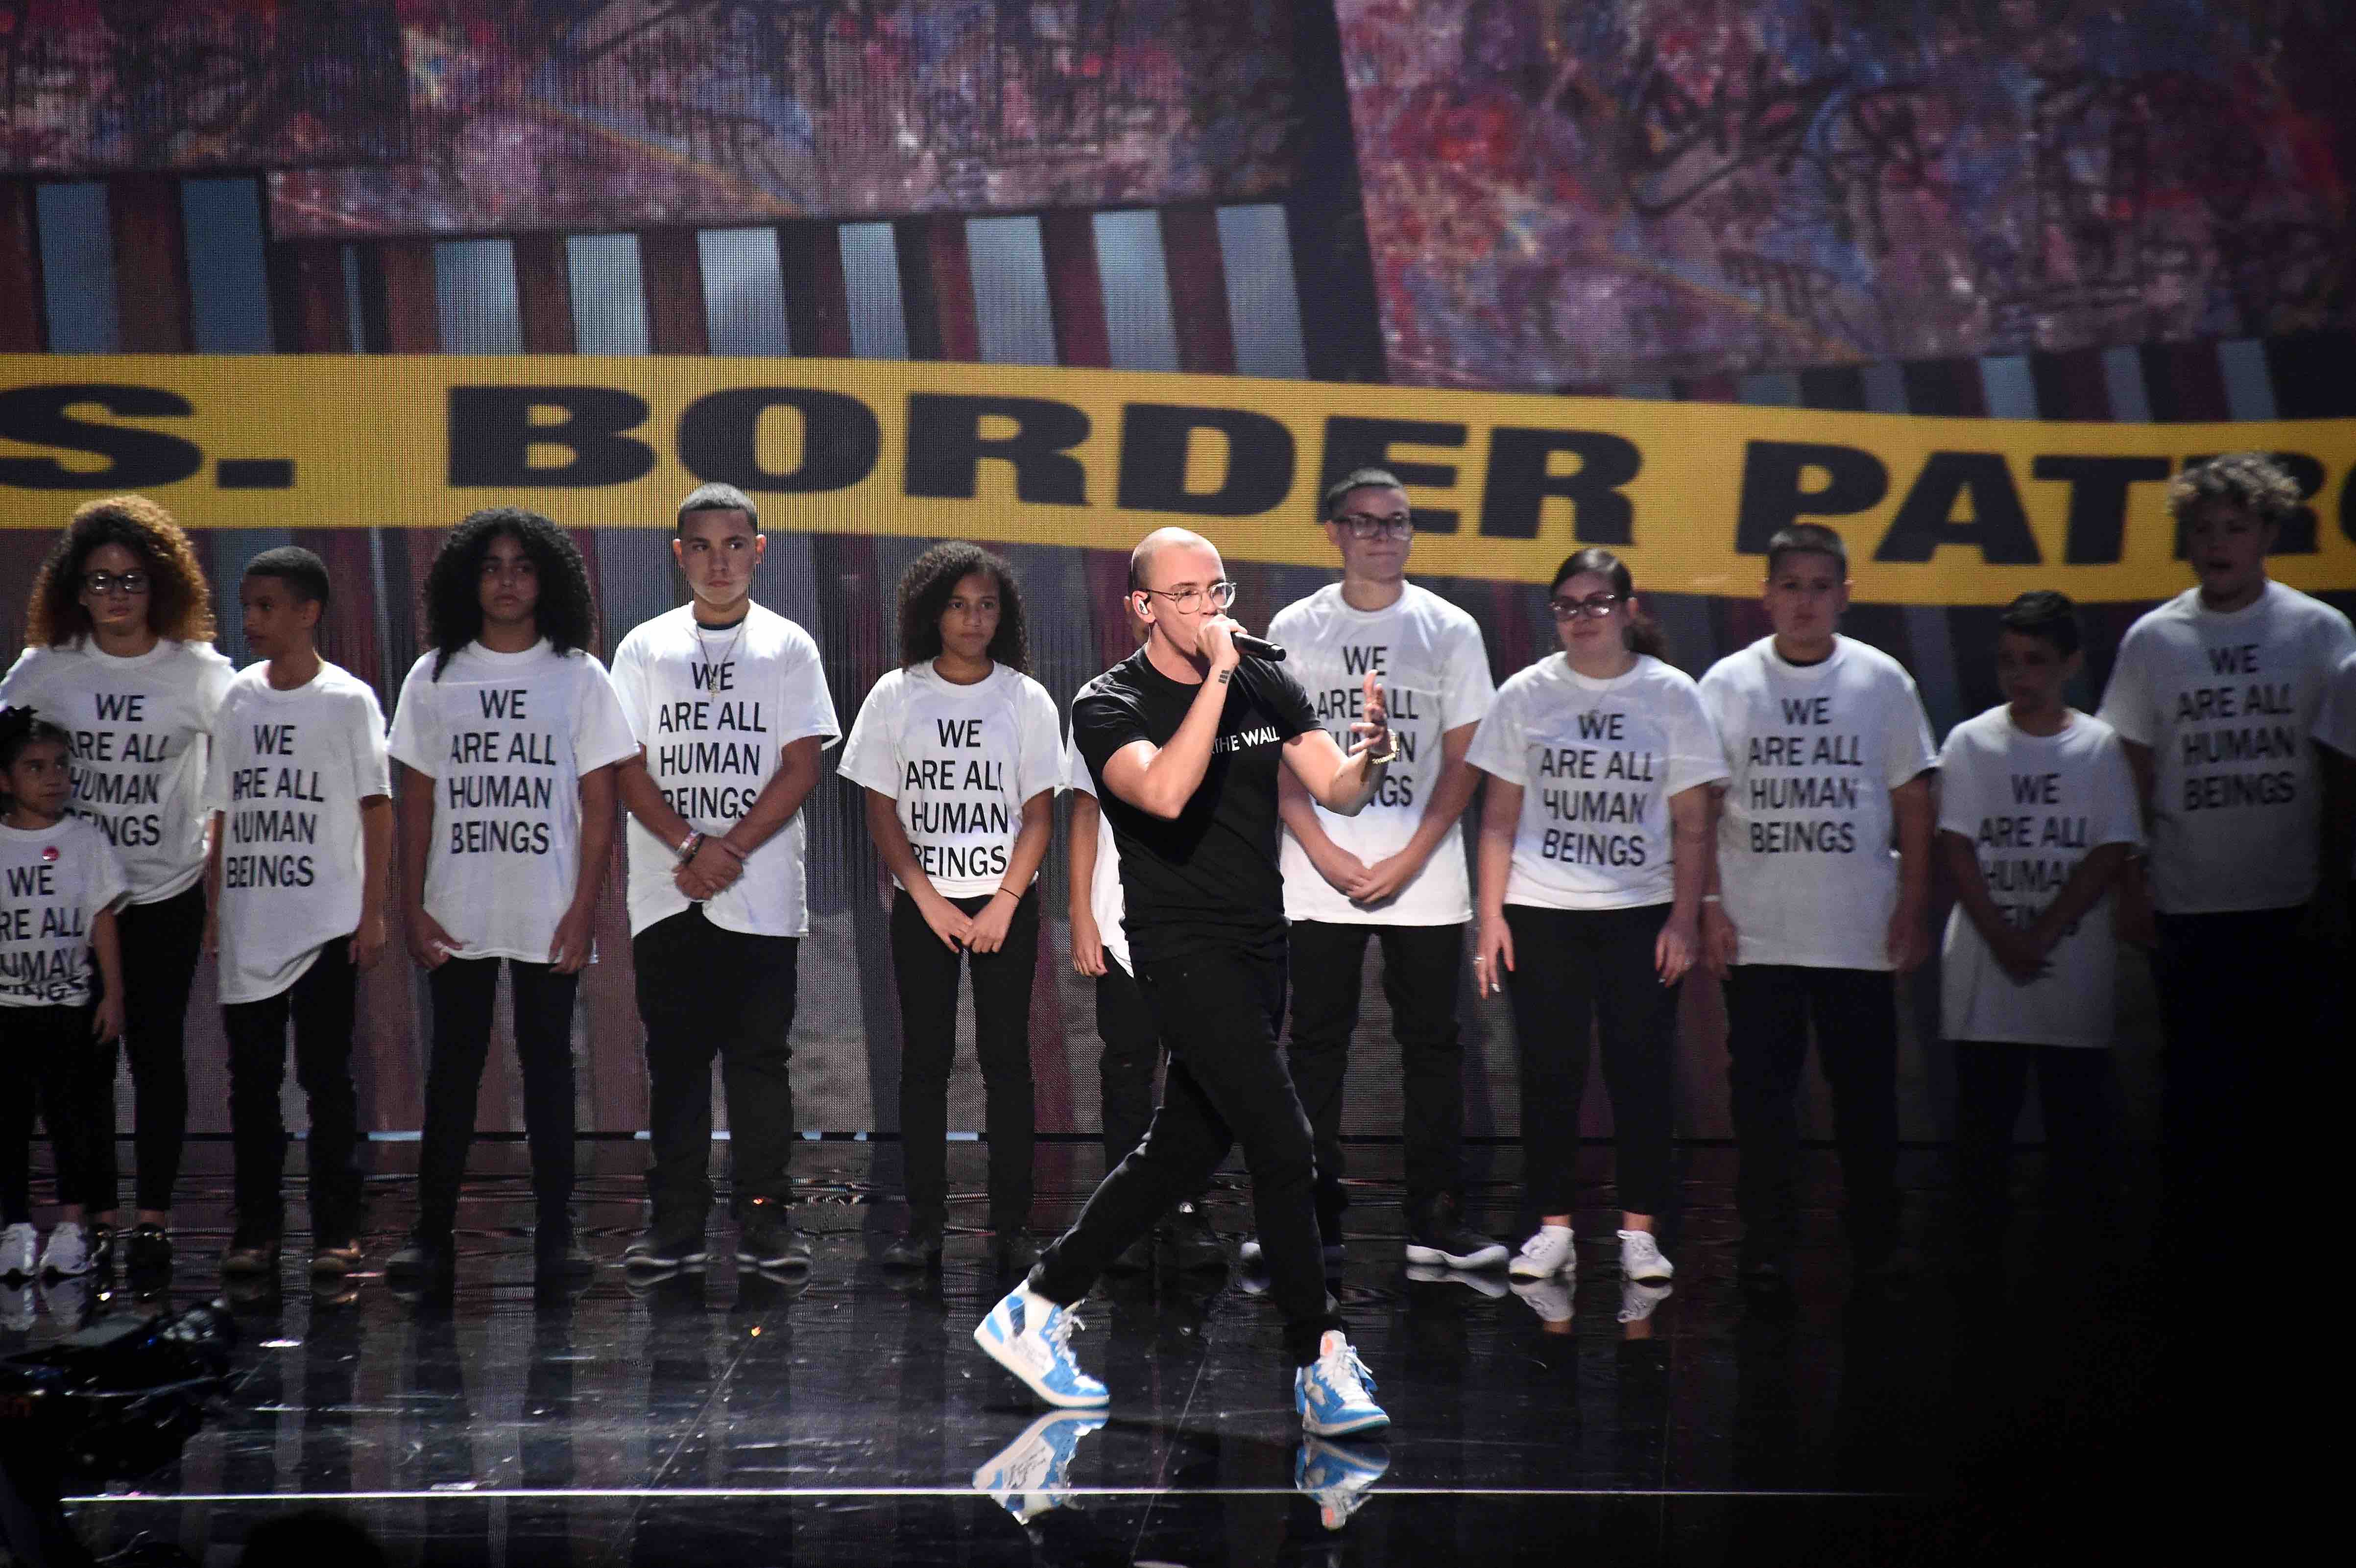 He Was a Part of Logic's Powerful Immigration Protest at the VMAs. His Father Remains in a Detention Center